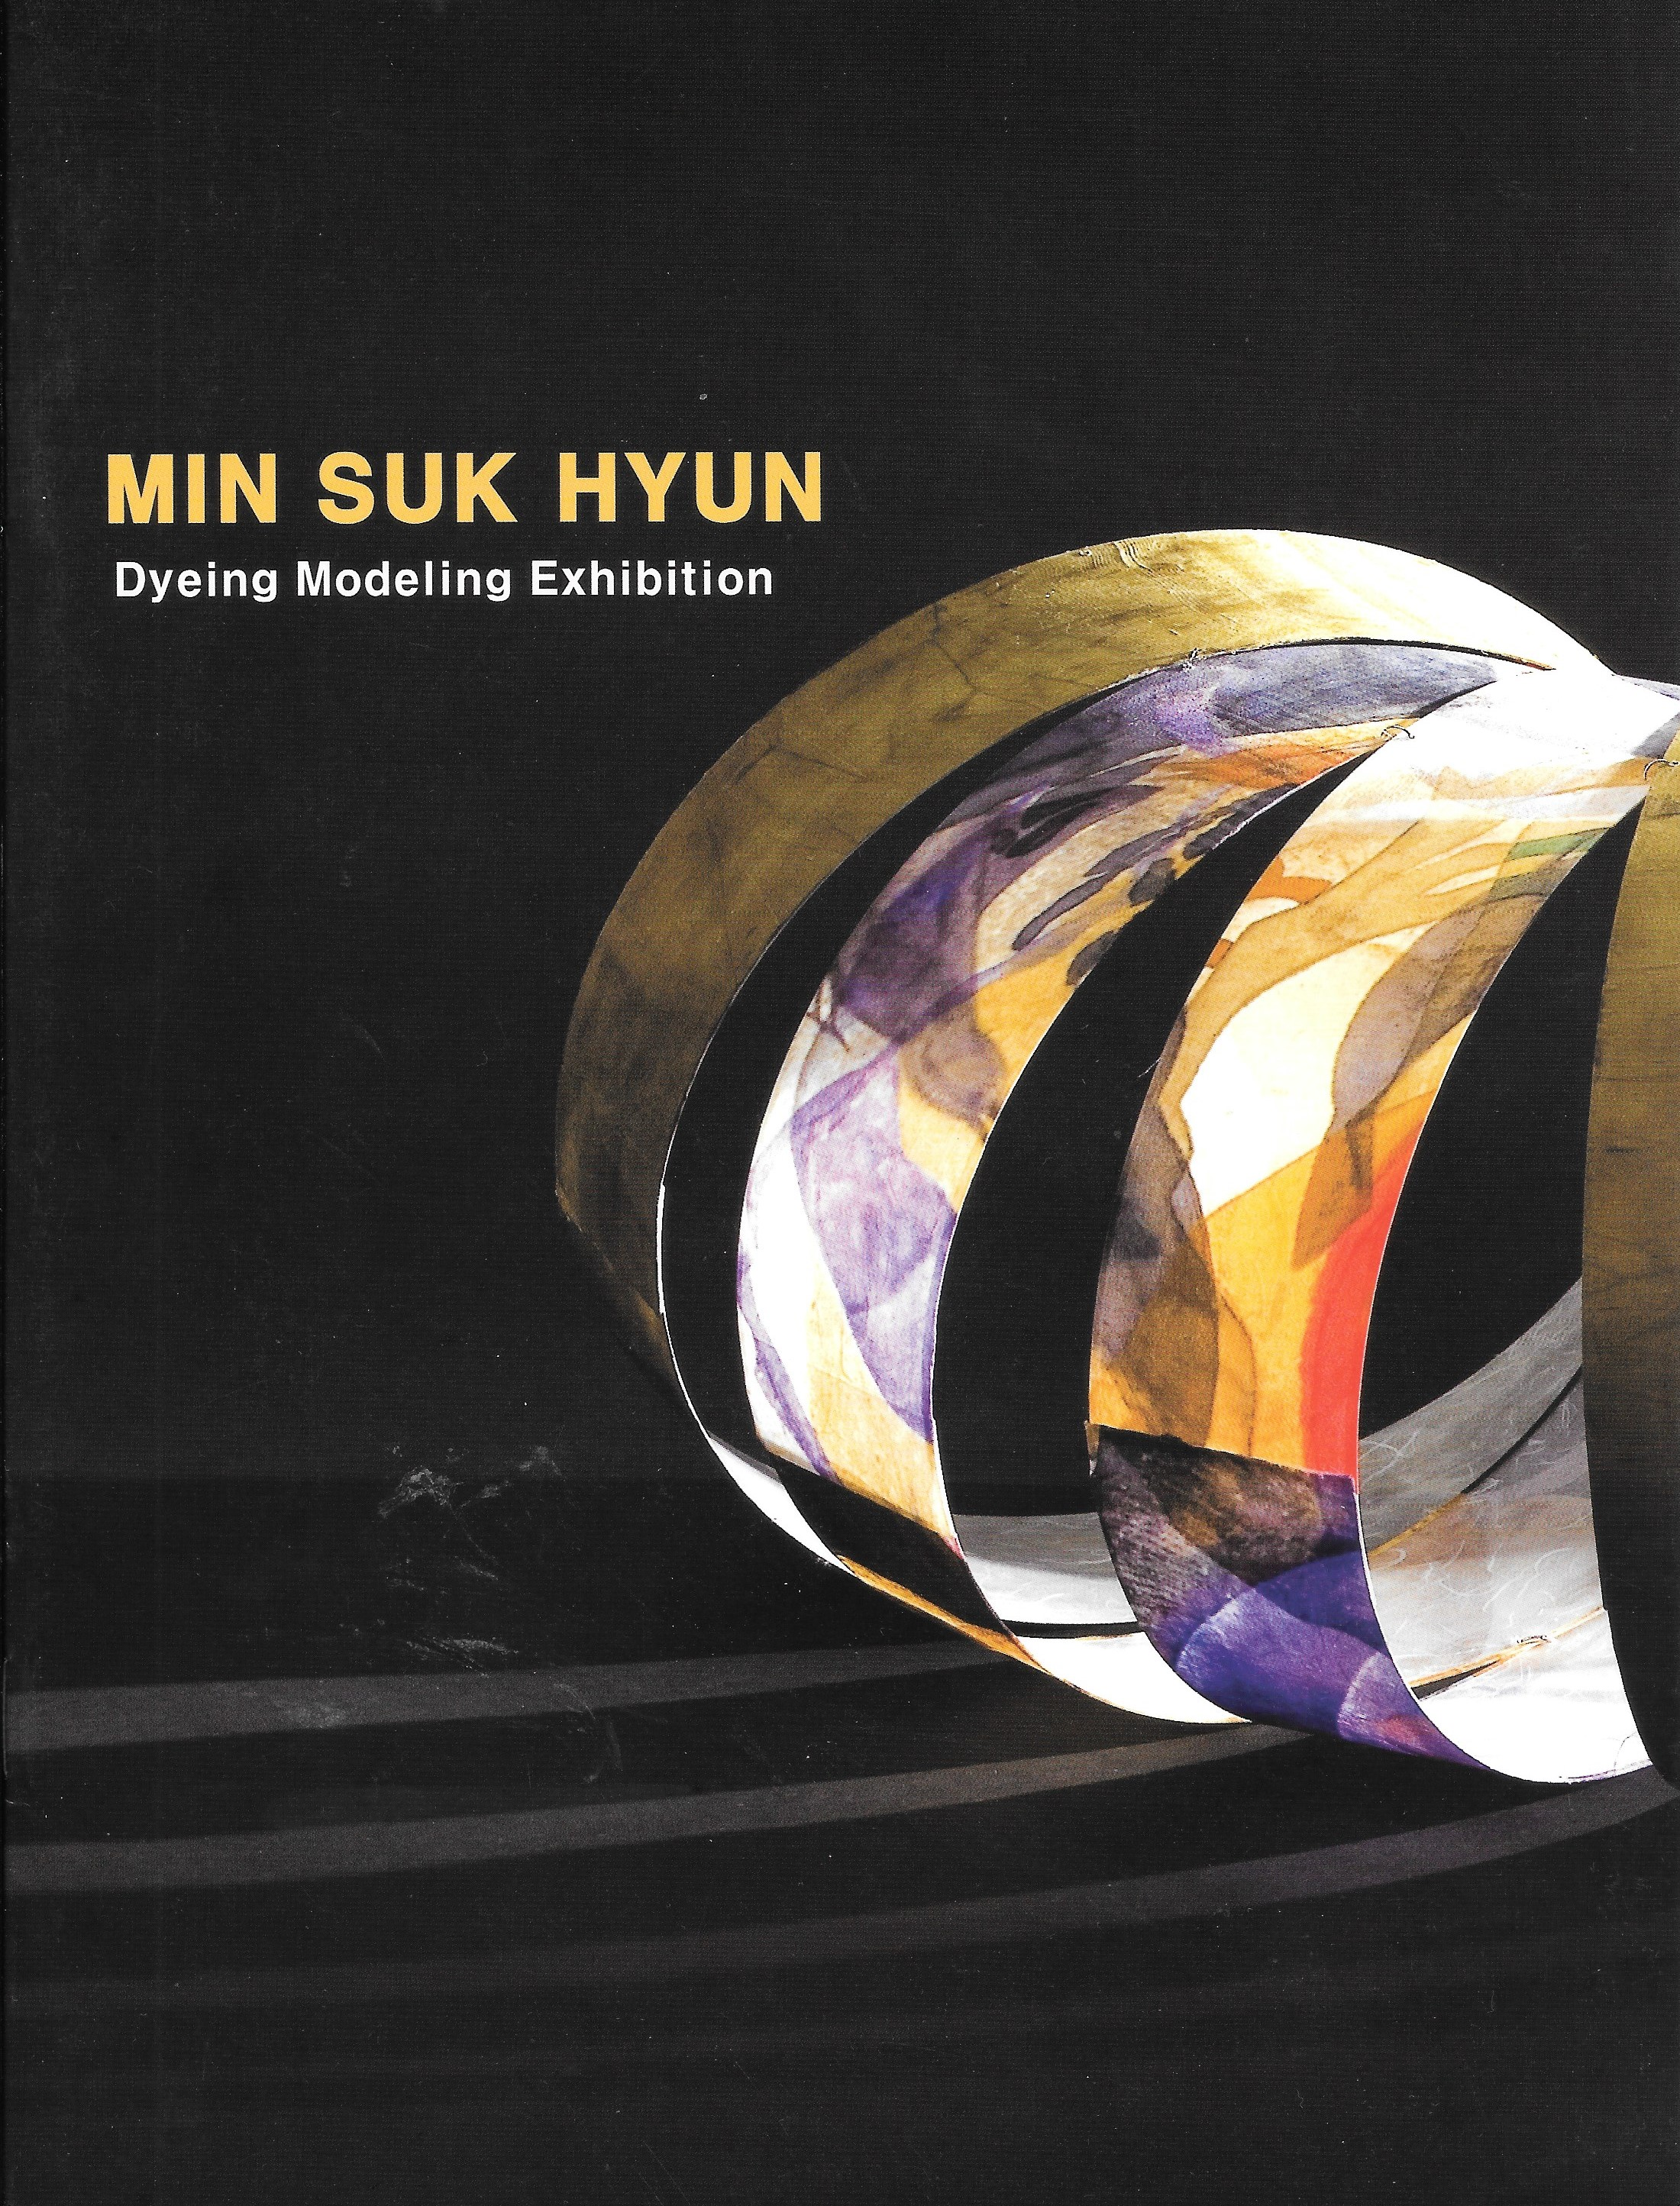 2007 Min sukhyun Dyeing modeling Exhibition